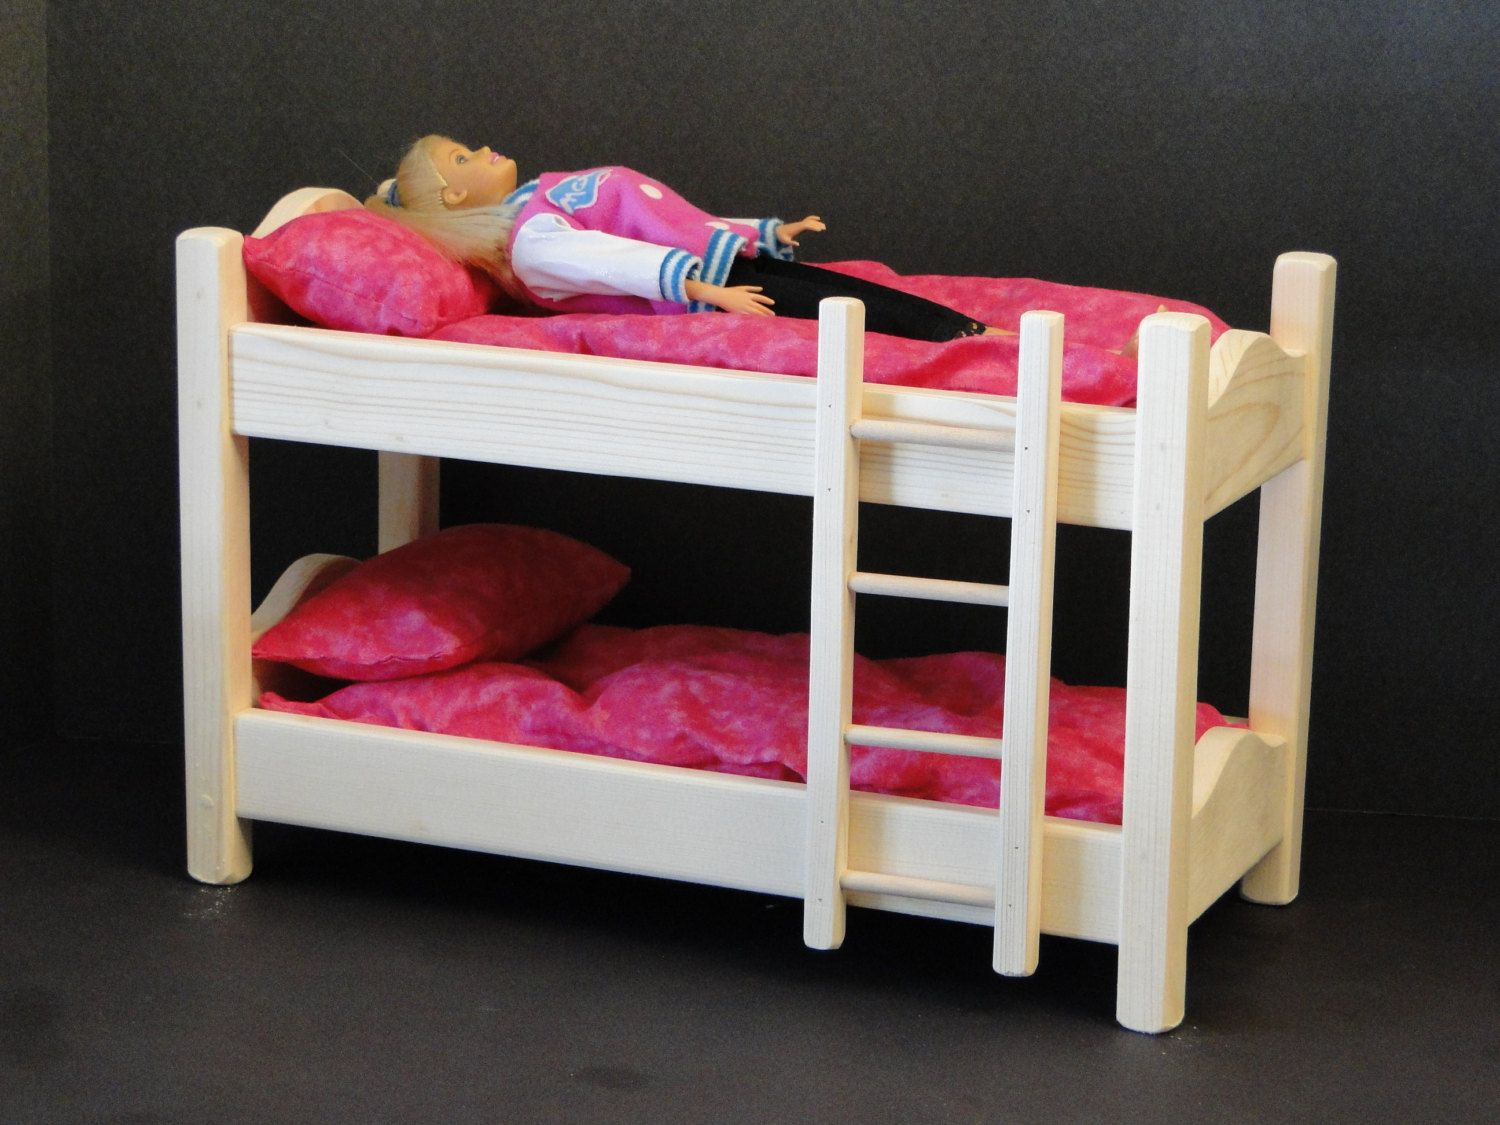 12 Inch Doll Bunk Bed With Mattress By Toysbyjohn On Etsy Doll Bunk Beds 18 Inch Doll Bedding Diy Barbie Furniture